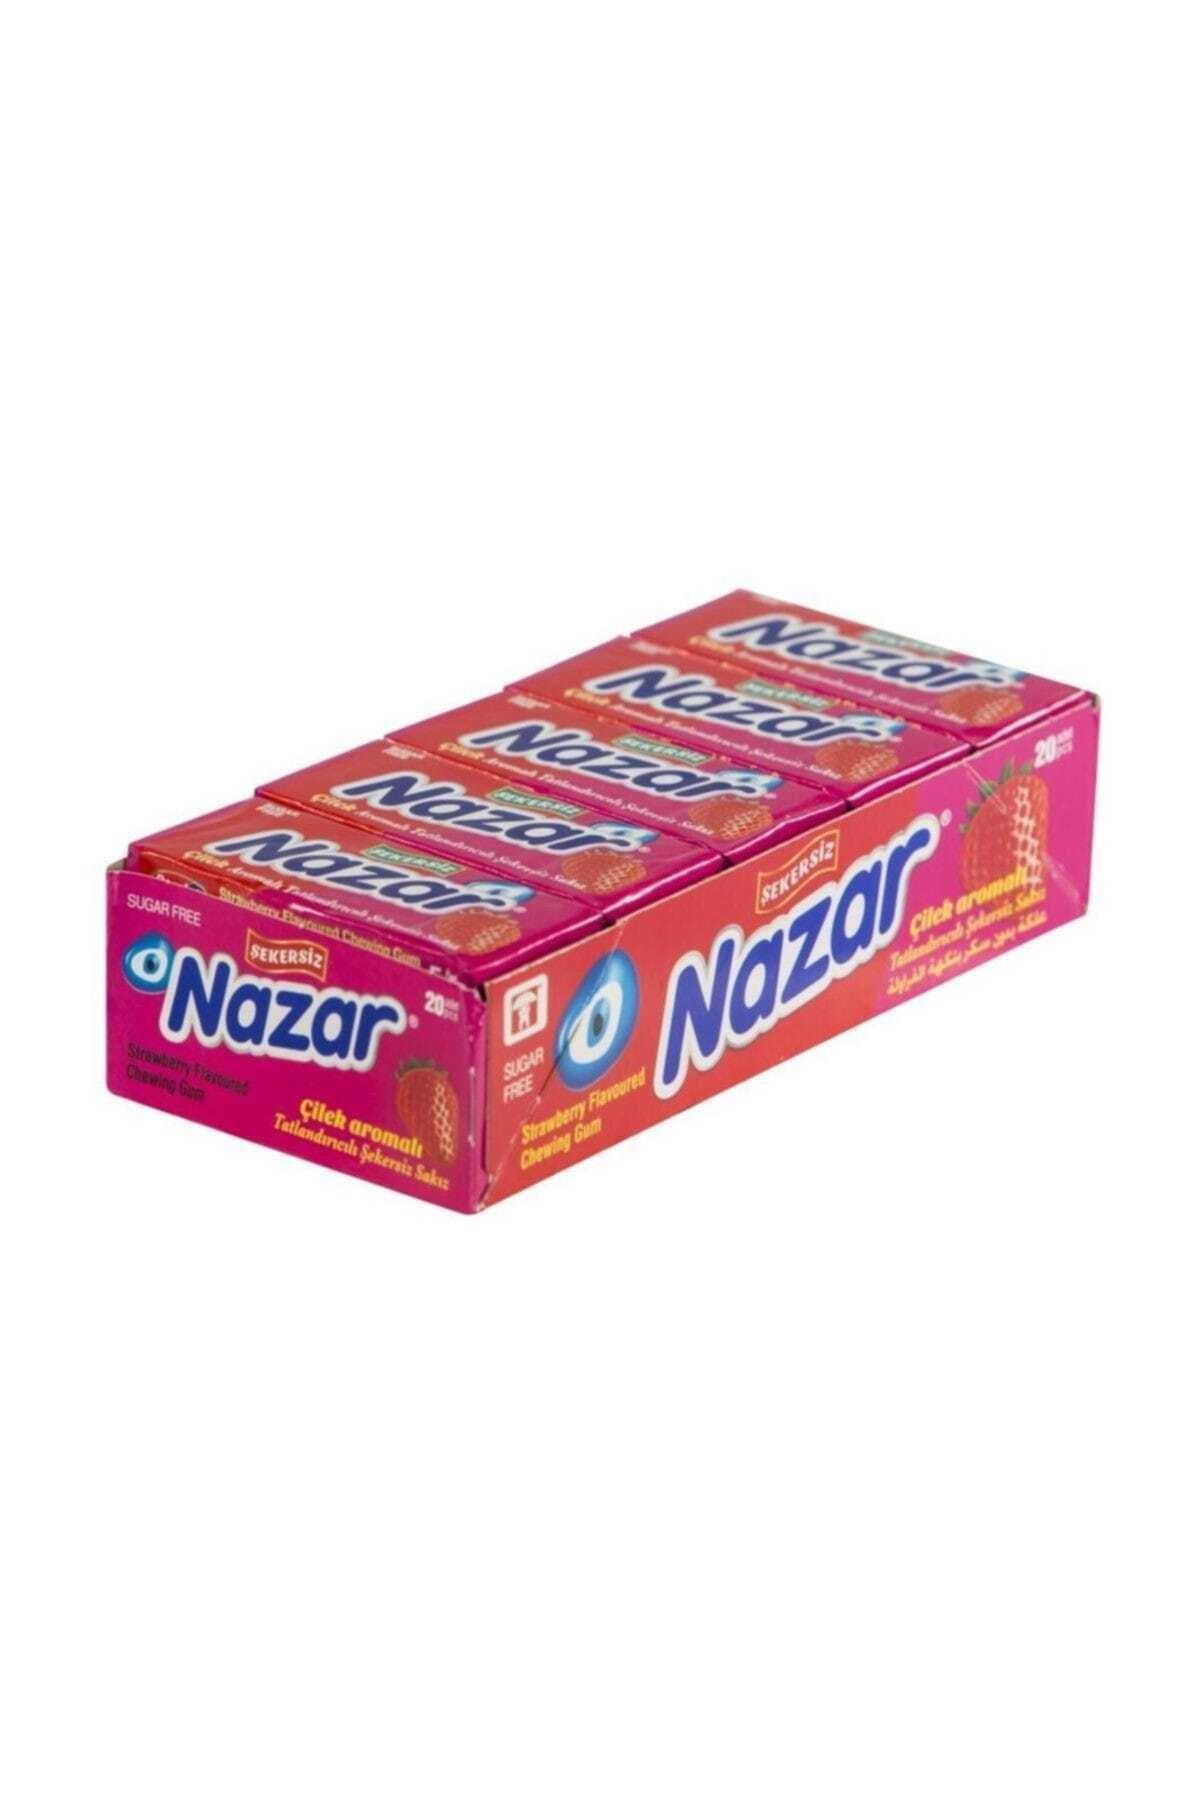 Nazar Gum Stick Strawberry Flavored 5 Pieces (20 Pieces)   FREE SHİPPİNG